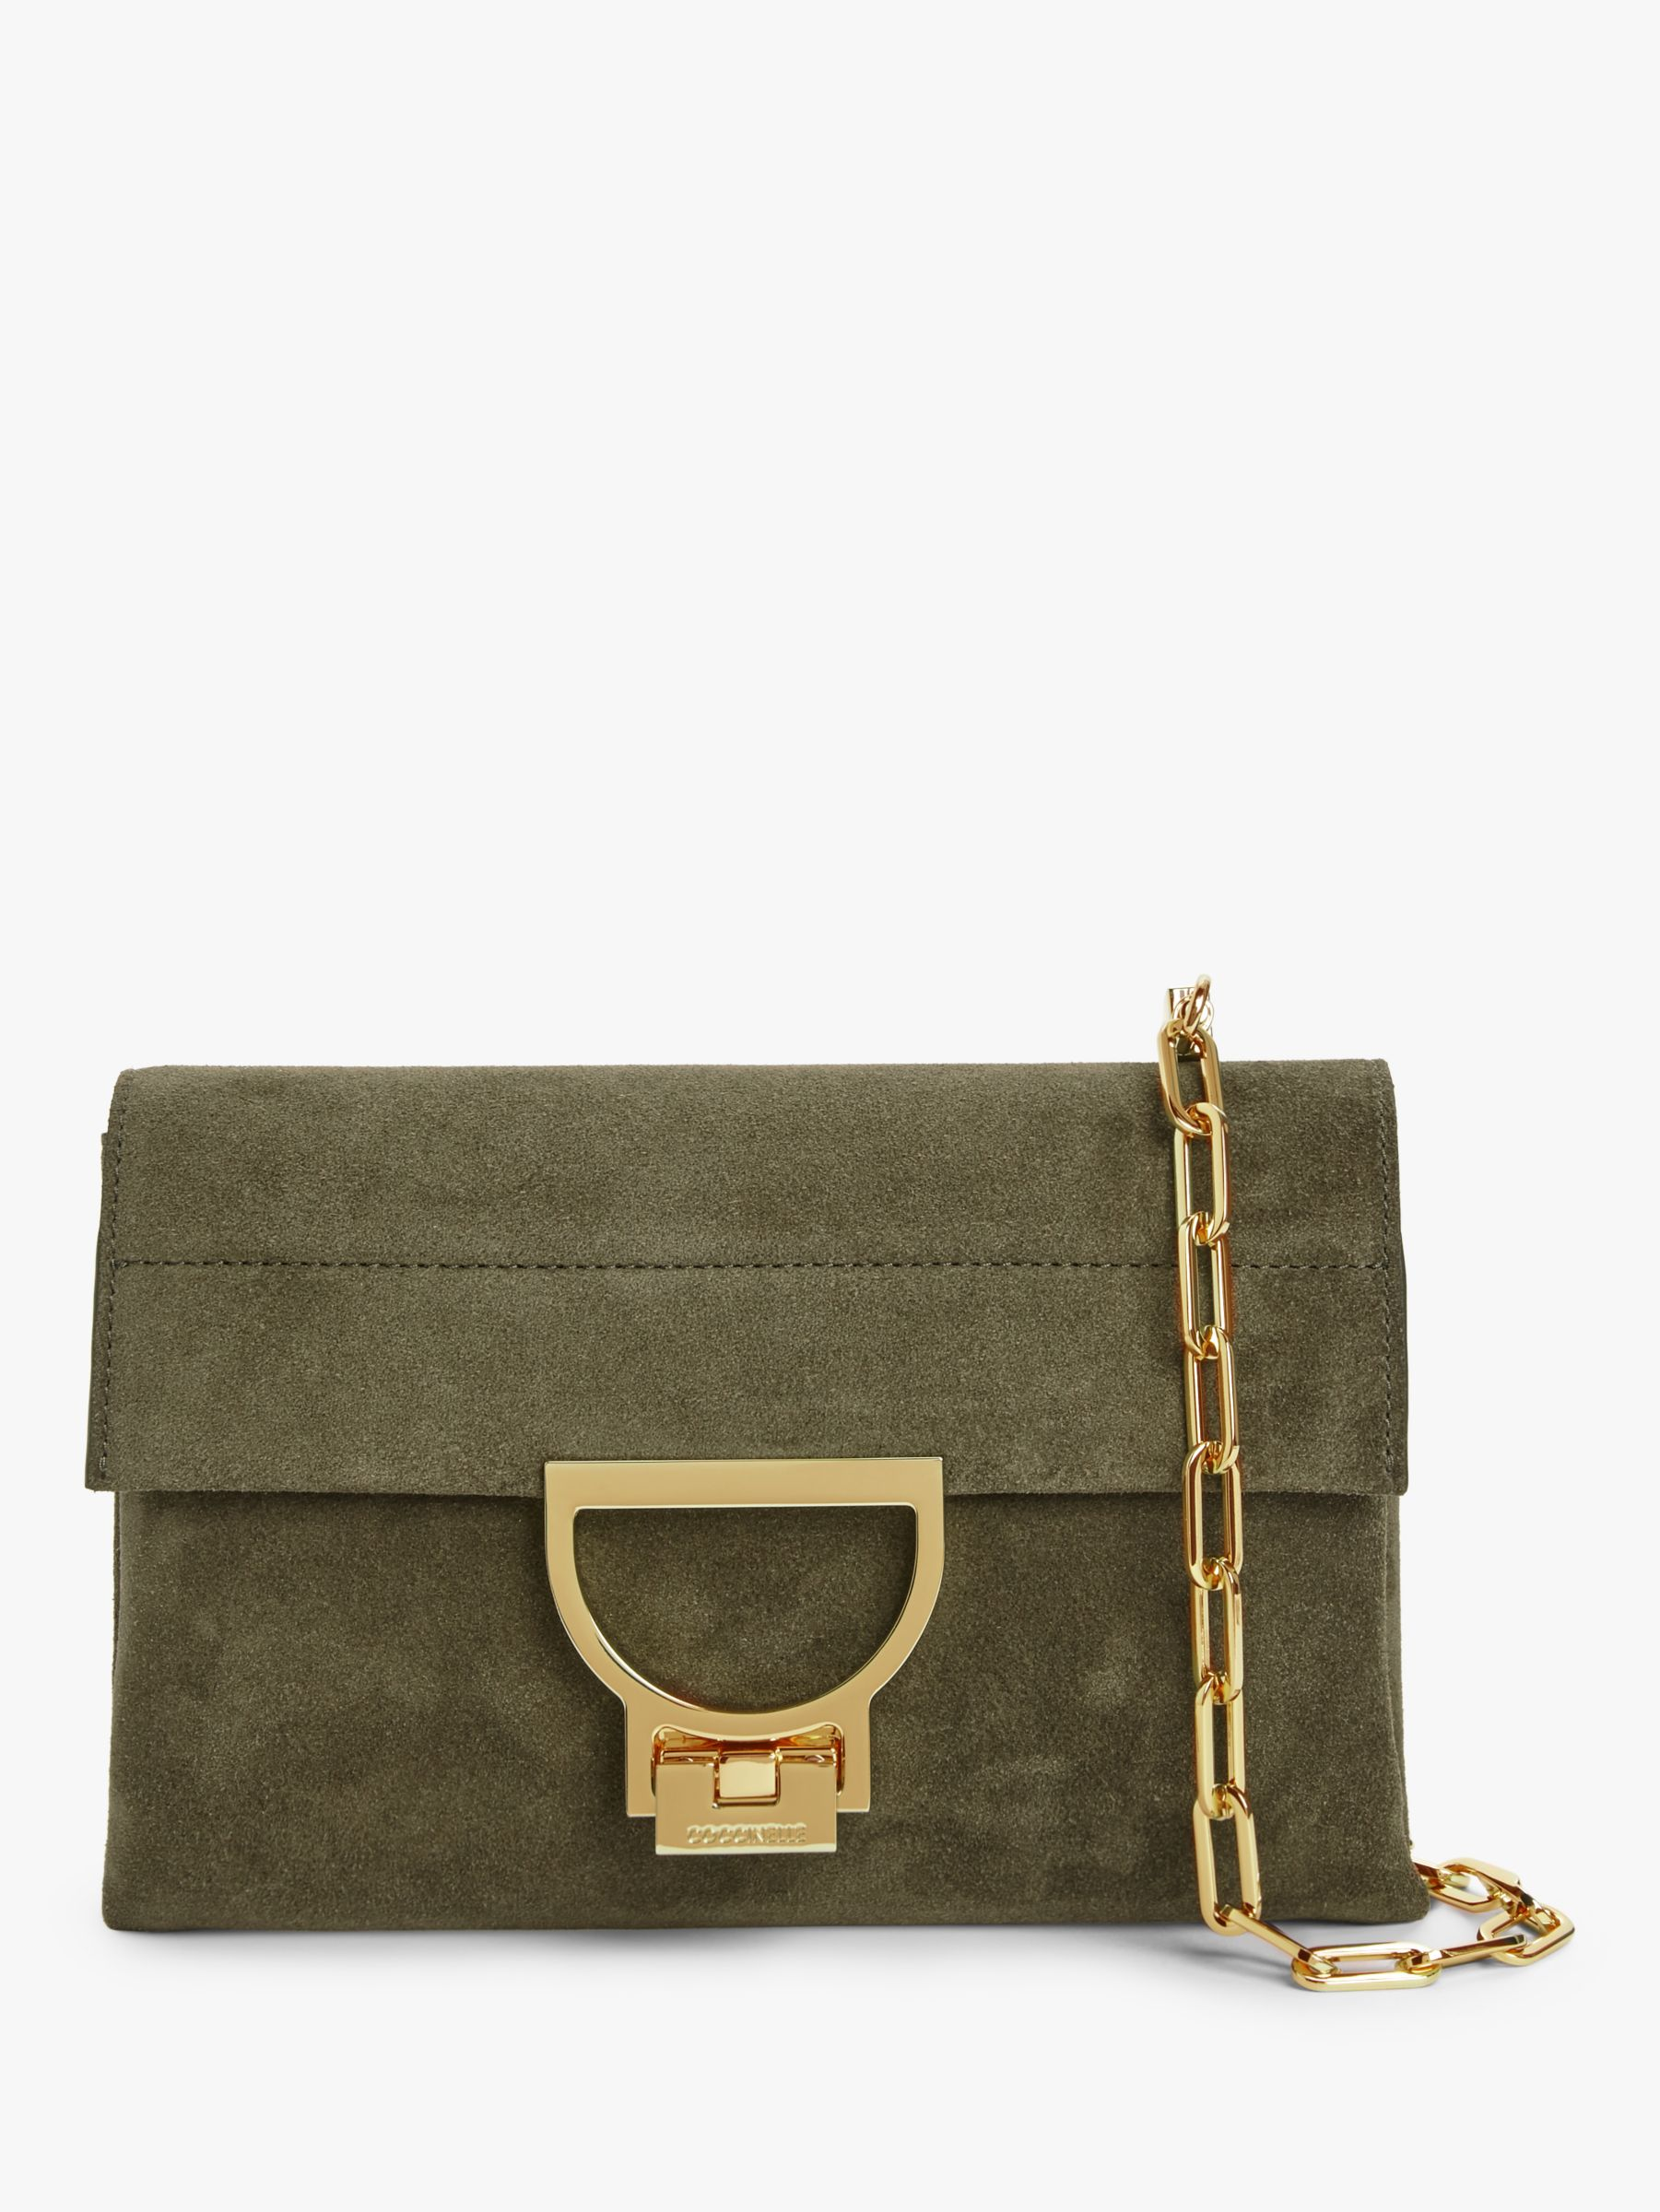 Coccinelle Coccinelle Arlettis Suede Cross Body Bag